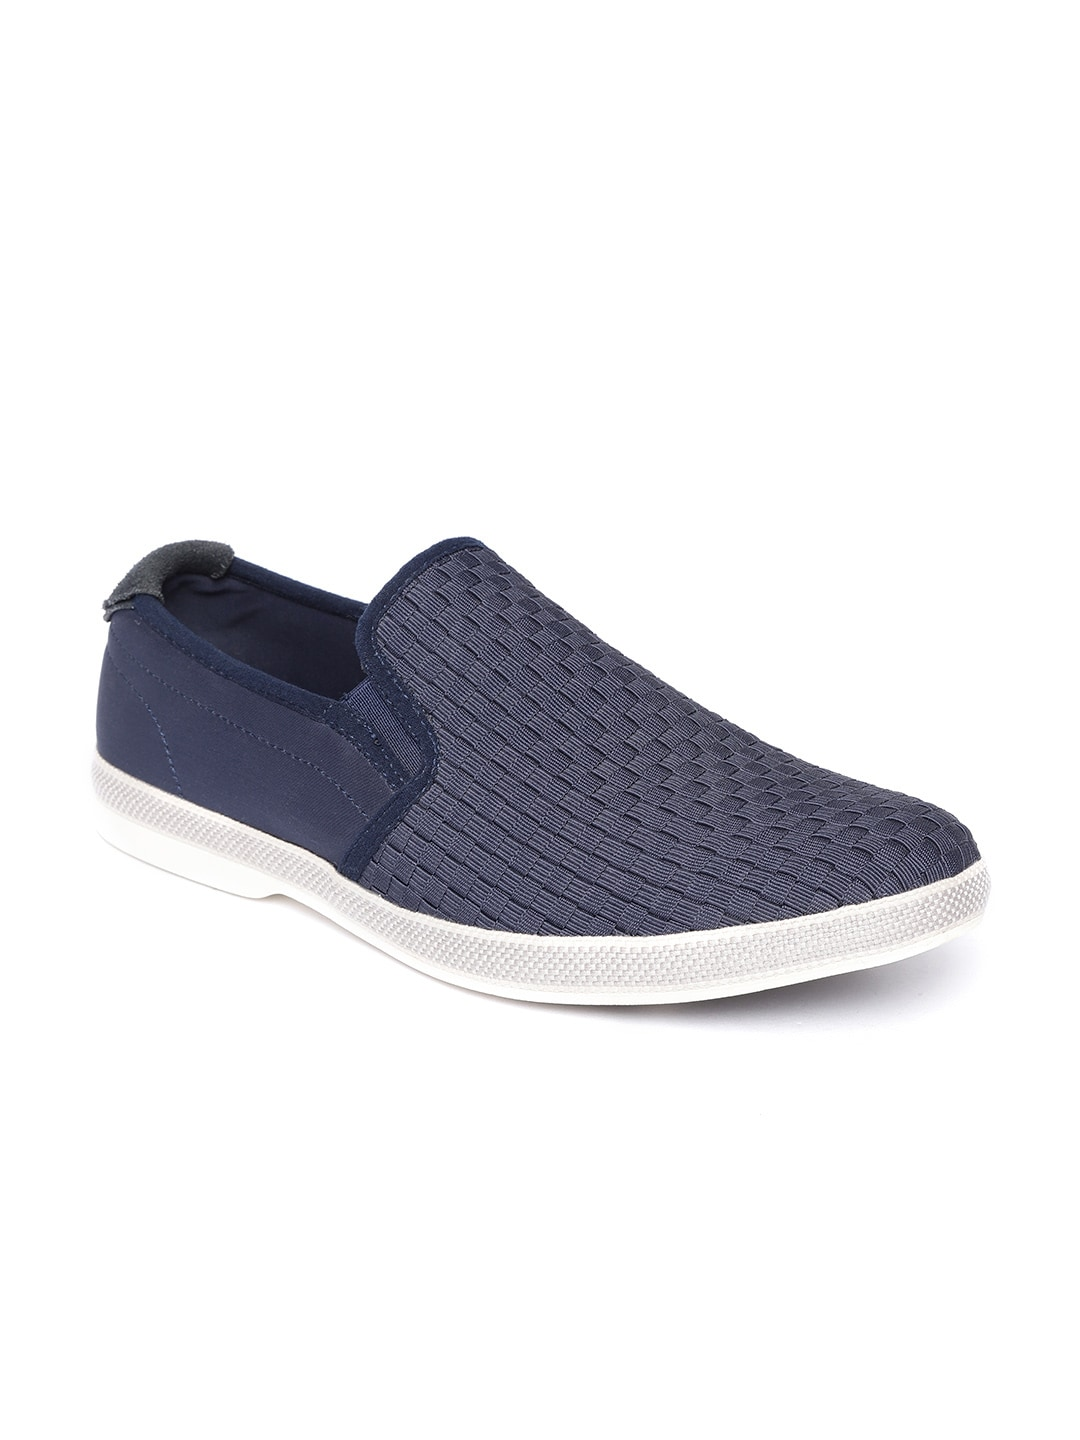 ce7f27f0168b ALDO Shoes - Buy Shoes from ALDO Online Store in India